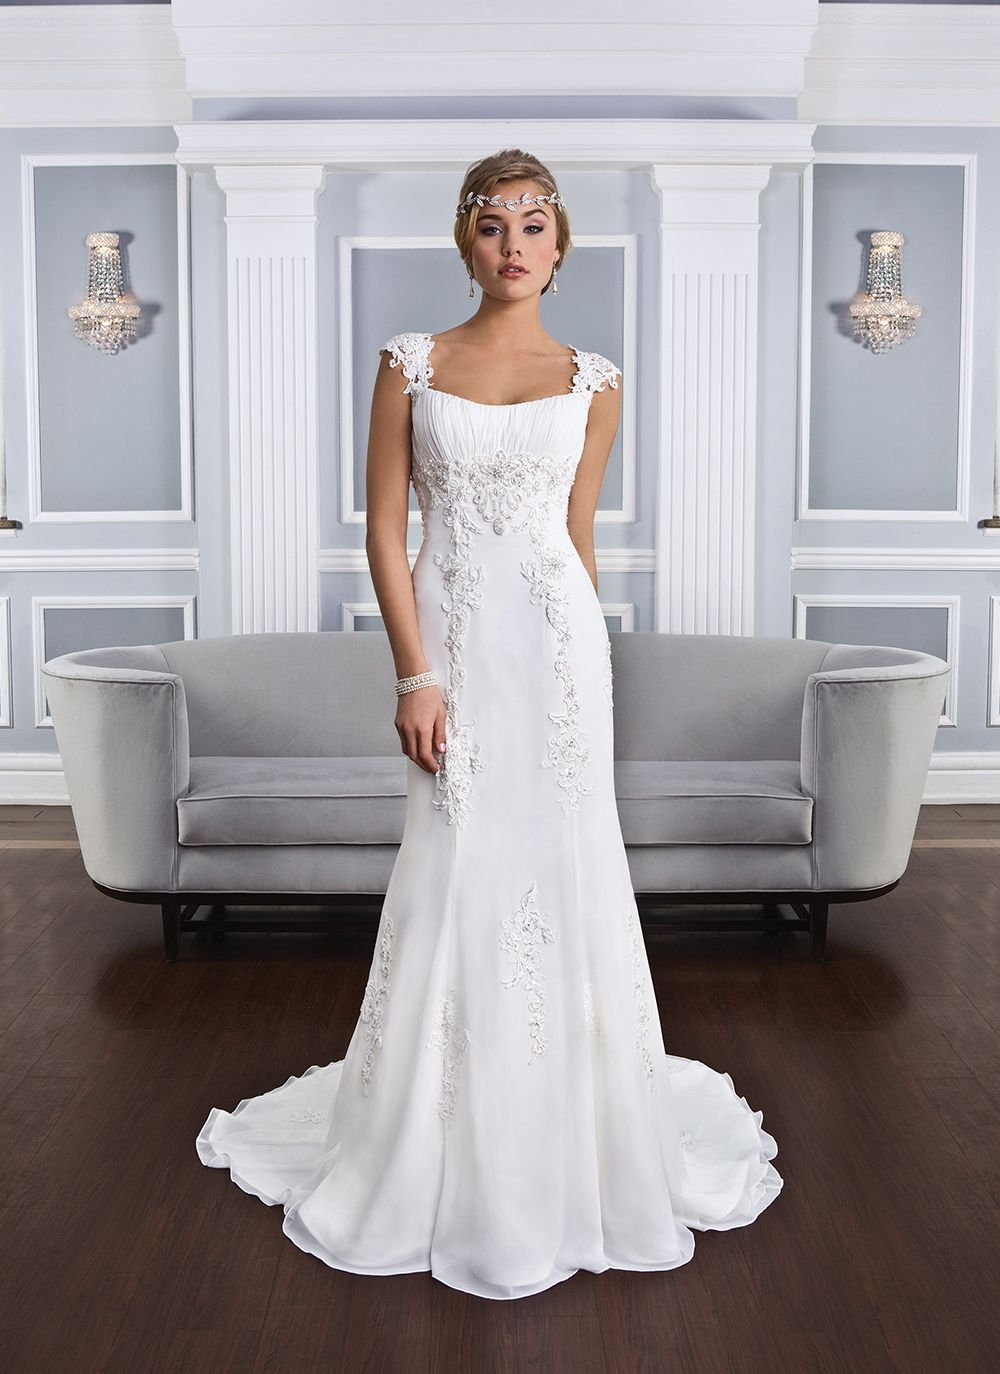 Lillian West Lillian West Style 6326 Beaded Venice Lace